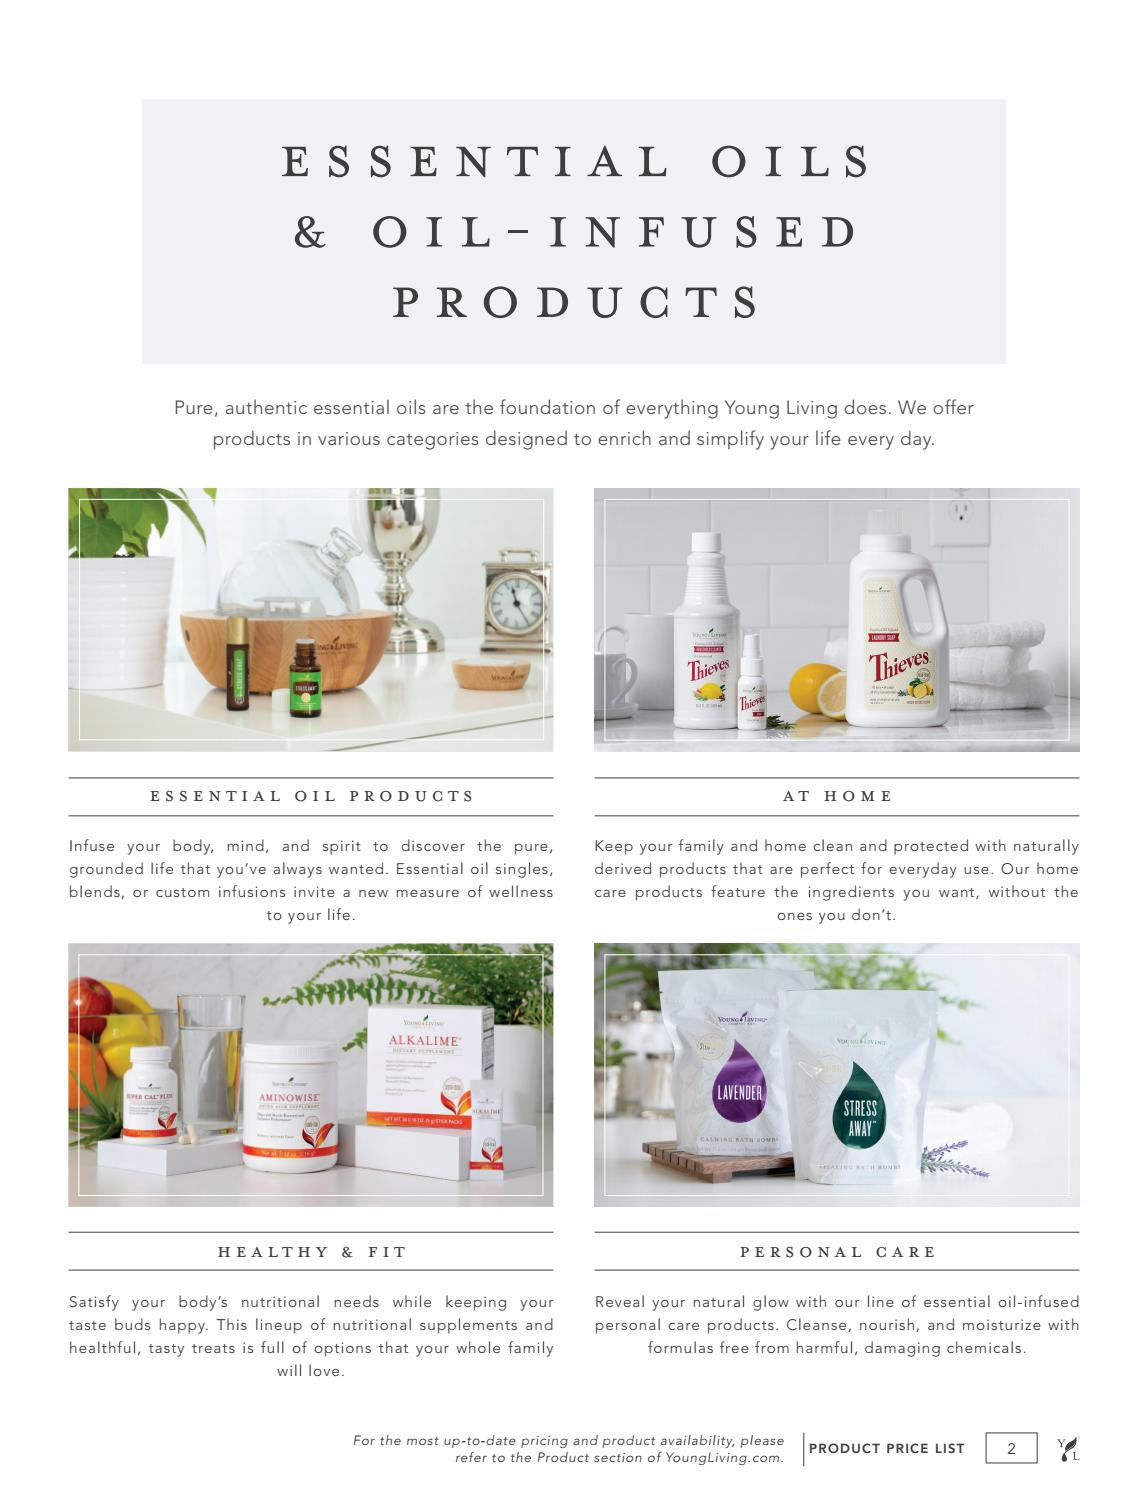 2018 US Product Price List v 1 by Young Living Essential